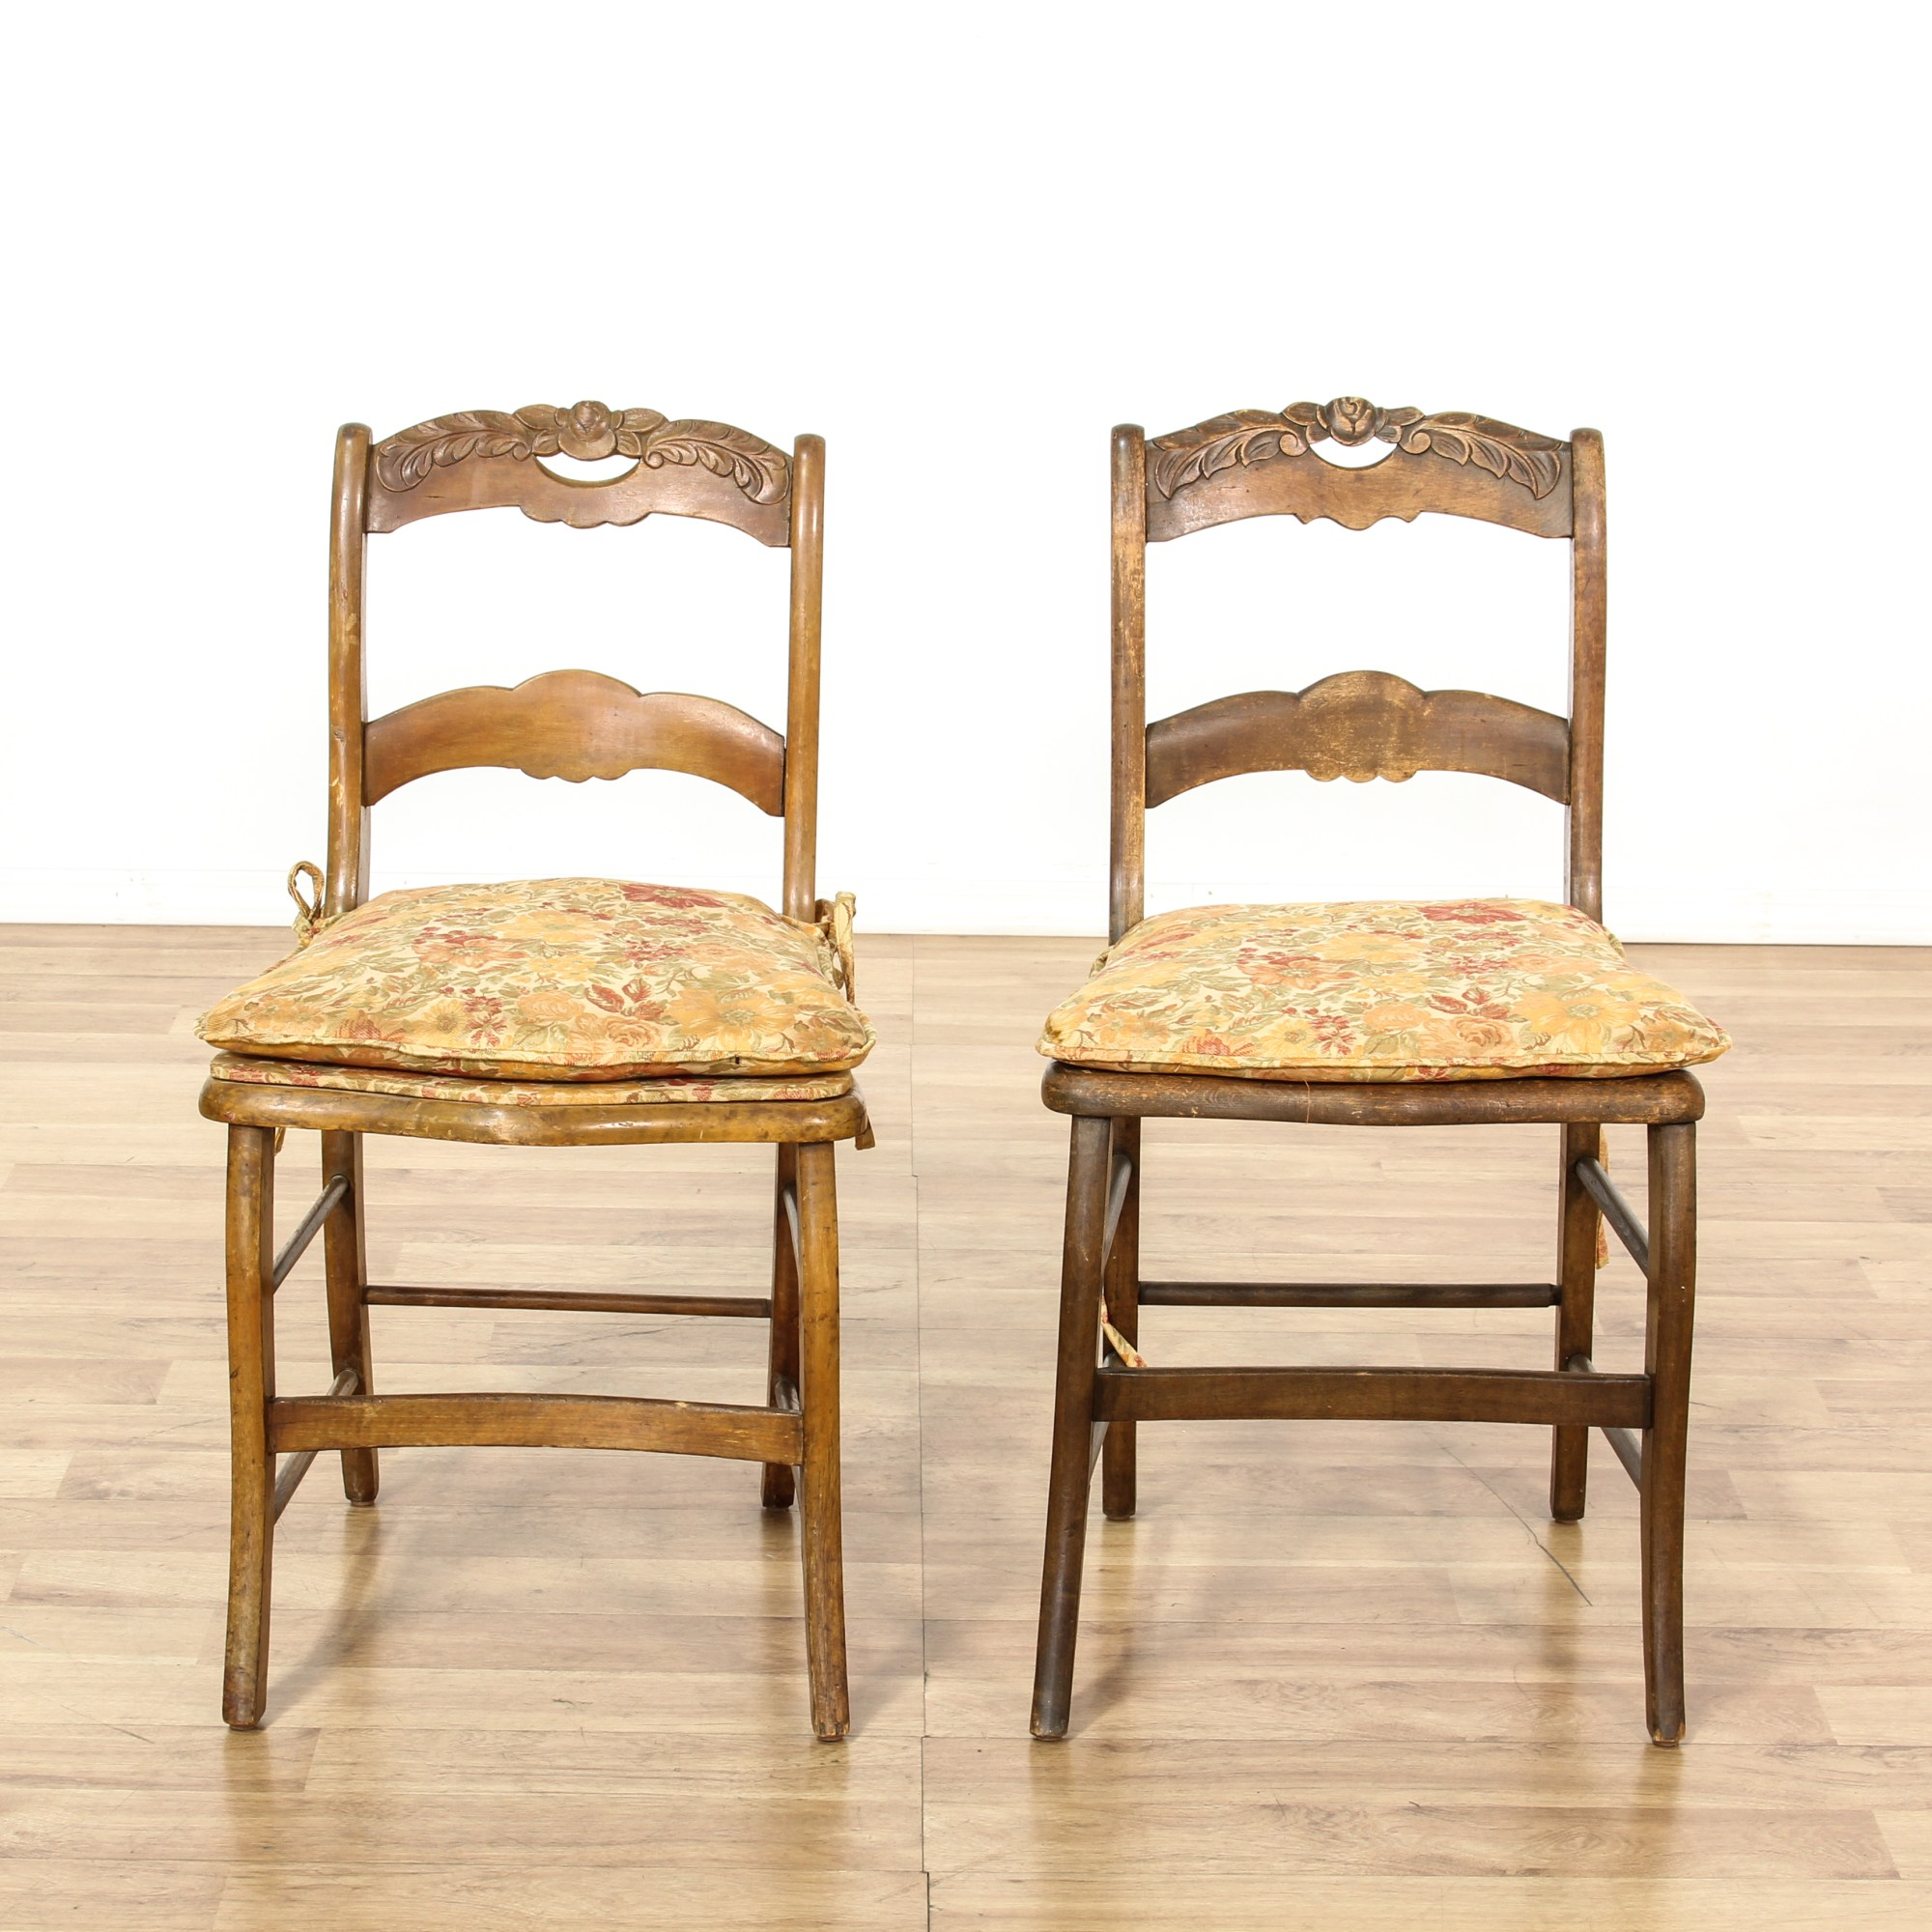 Pair of Rustic Carved Cottage Chic Accent Chairs